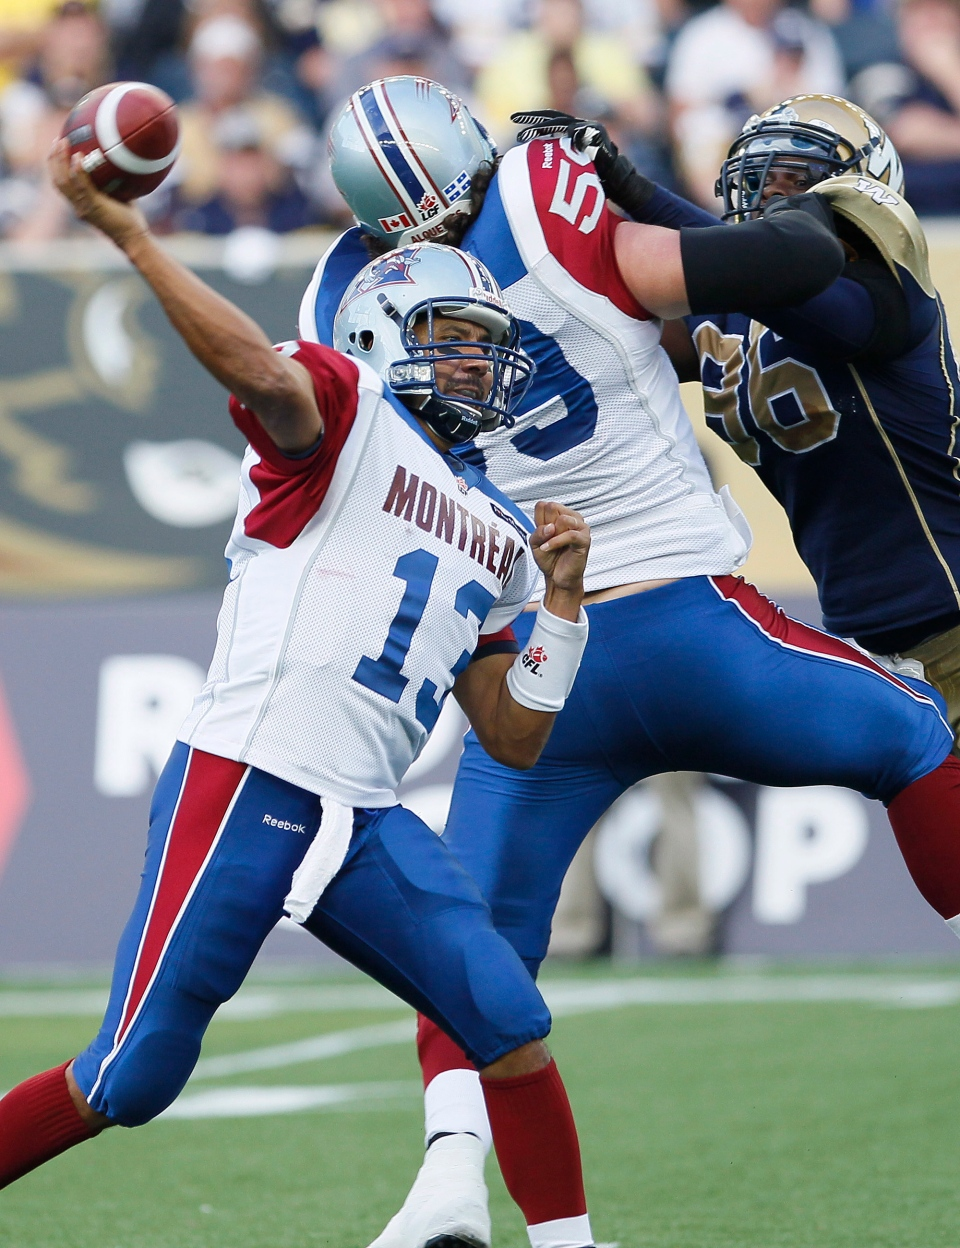 Montreal Alouettes quarterback Anthony Calvillo (13) throws against the Winnipeg Blue Bombers during the first half of their CFL game at Investors Group Field in Winnipeg Thursday, June 27, 2013. THE CANADIAN PRESS/John Woods